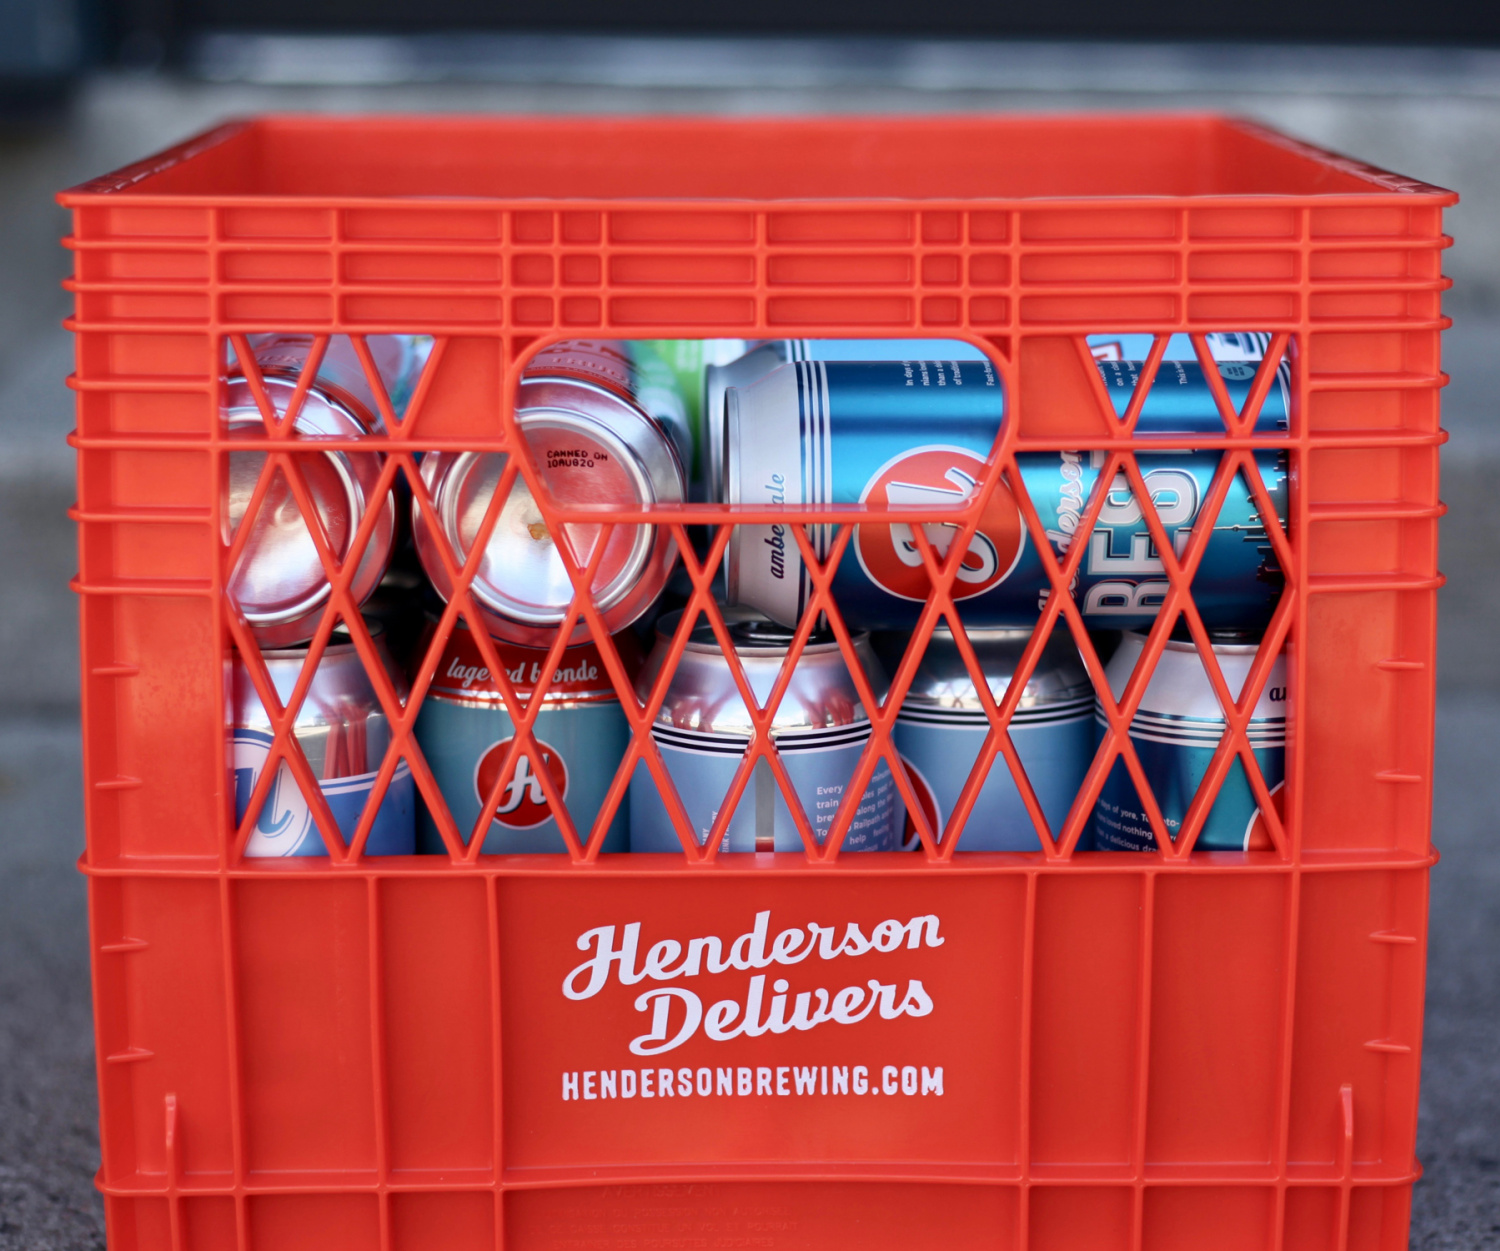 Henderson Brewing | Henderson offers beer delivery